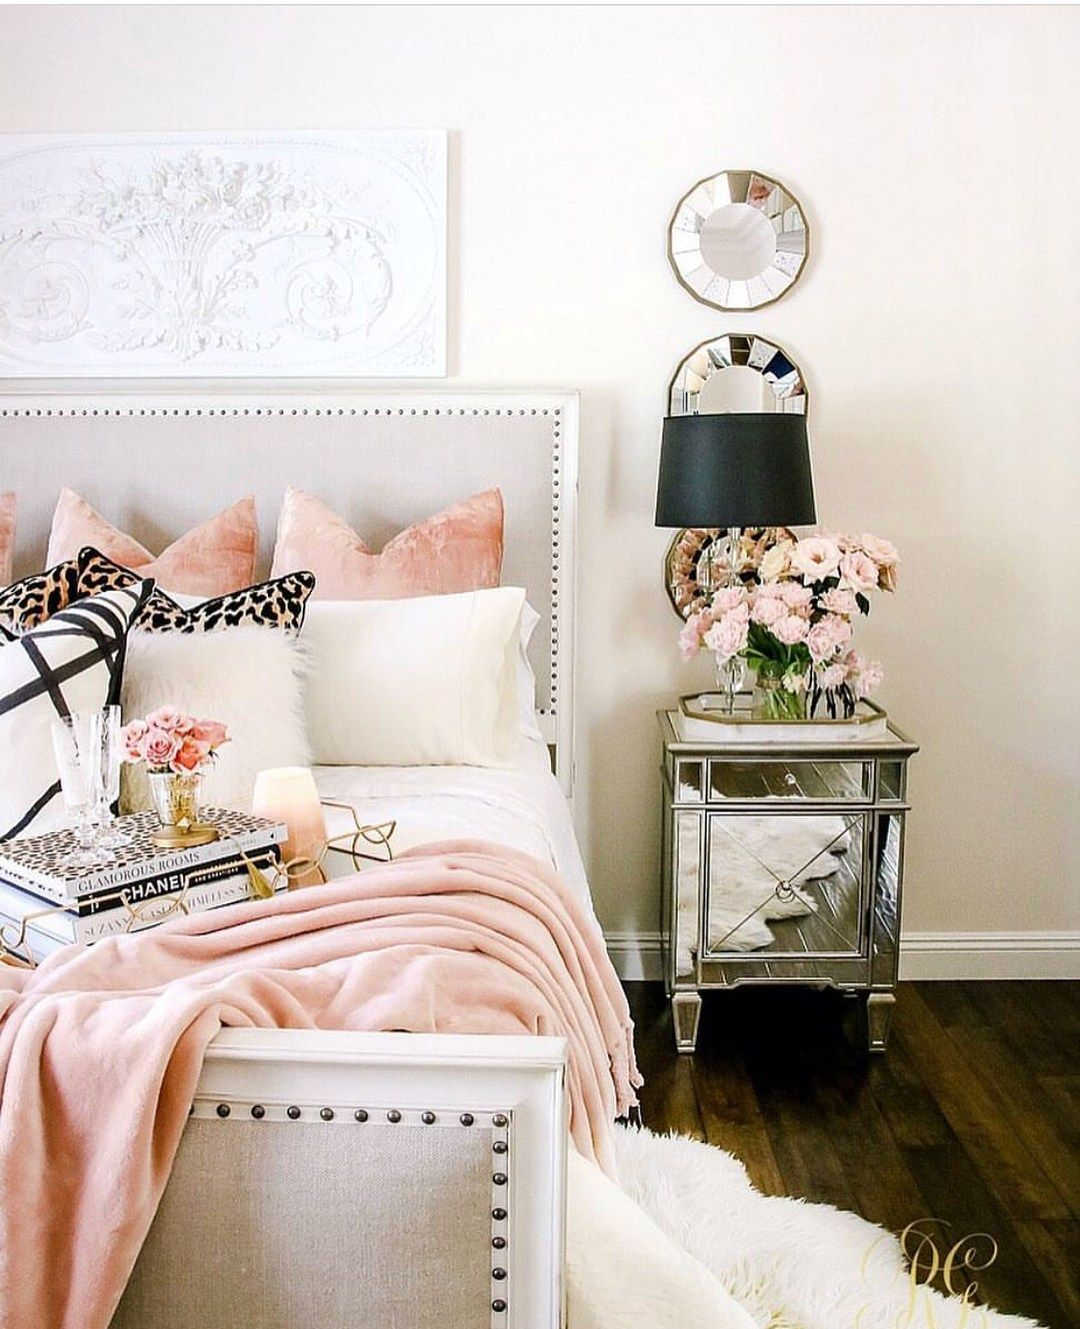 20 Cozy Bedroom Which Makes You Don T Want To Leave Your Bedroom Home Decor Bedroom Pink Bedroom Design Fall Bedroom